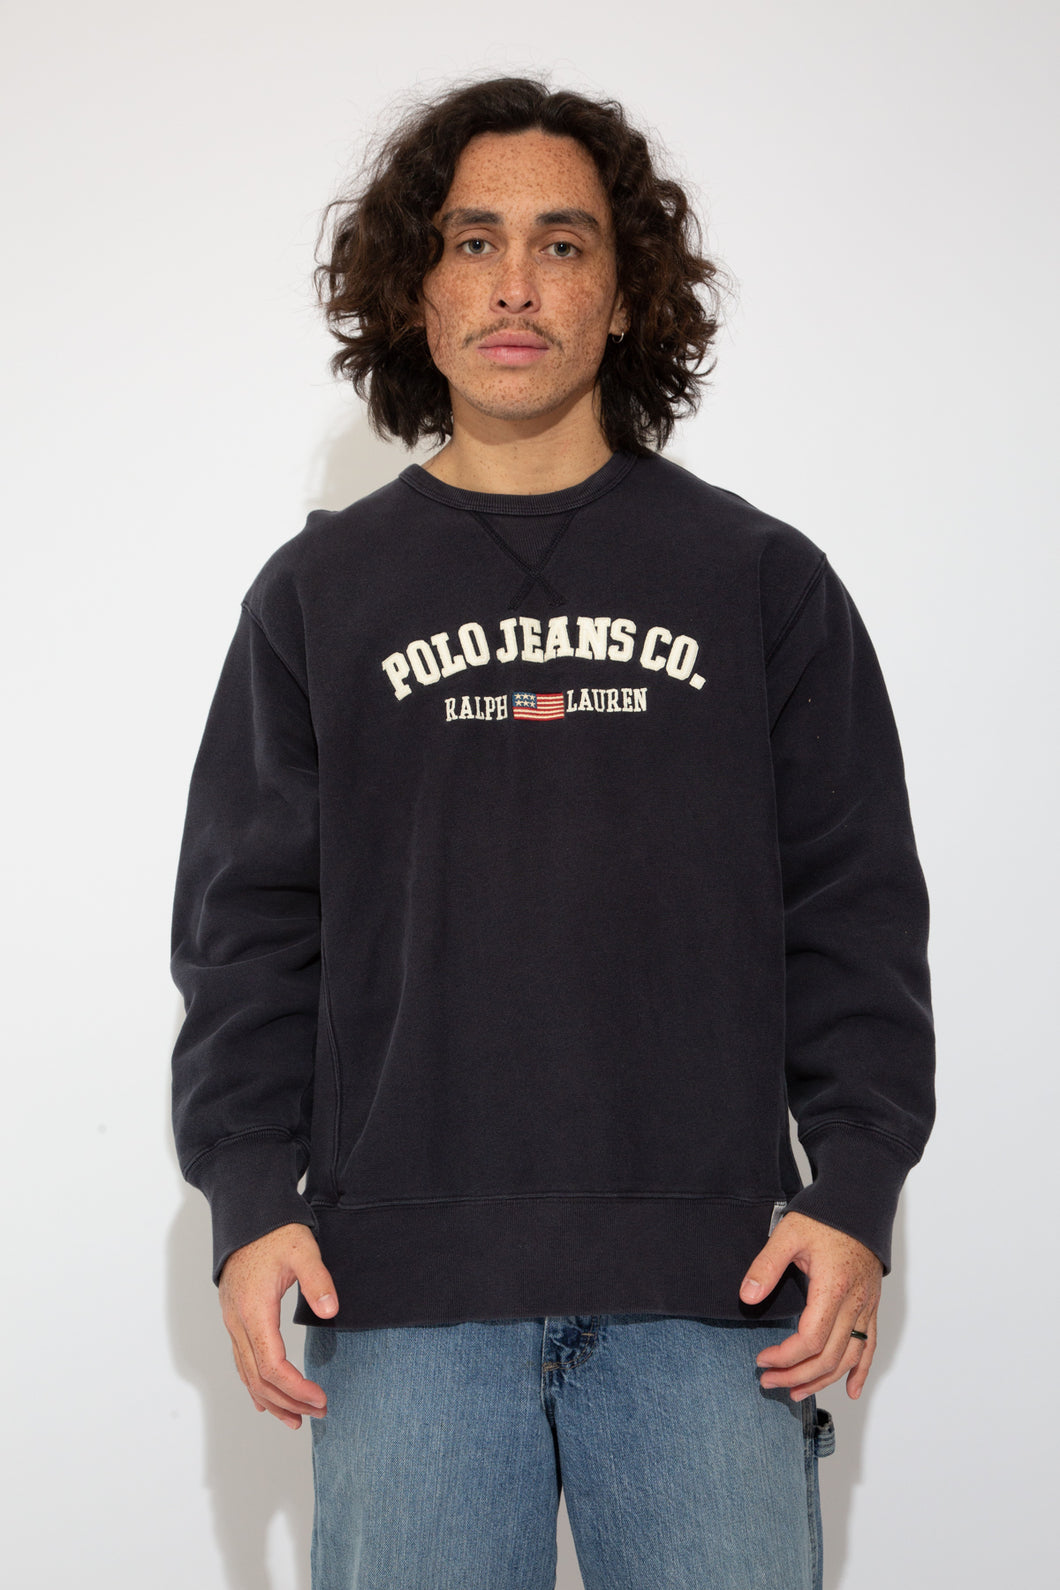 polo jeans co sweater. 90s vintage. magichollow.